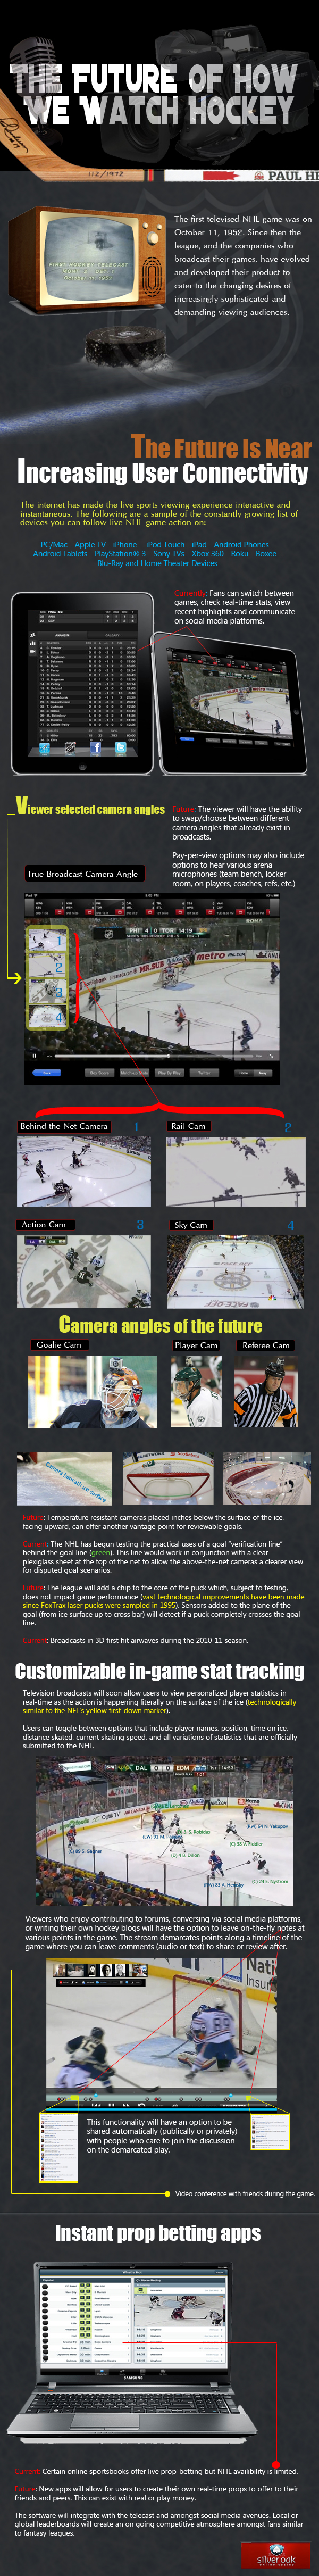 4. The future of NHL hockey broadcasts